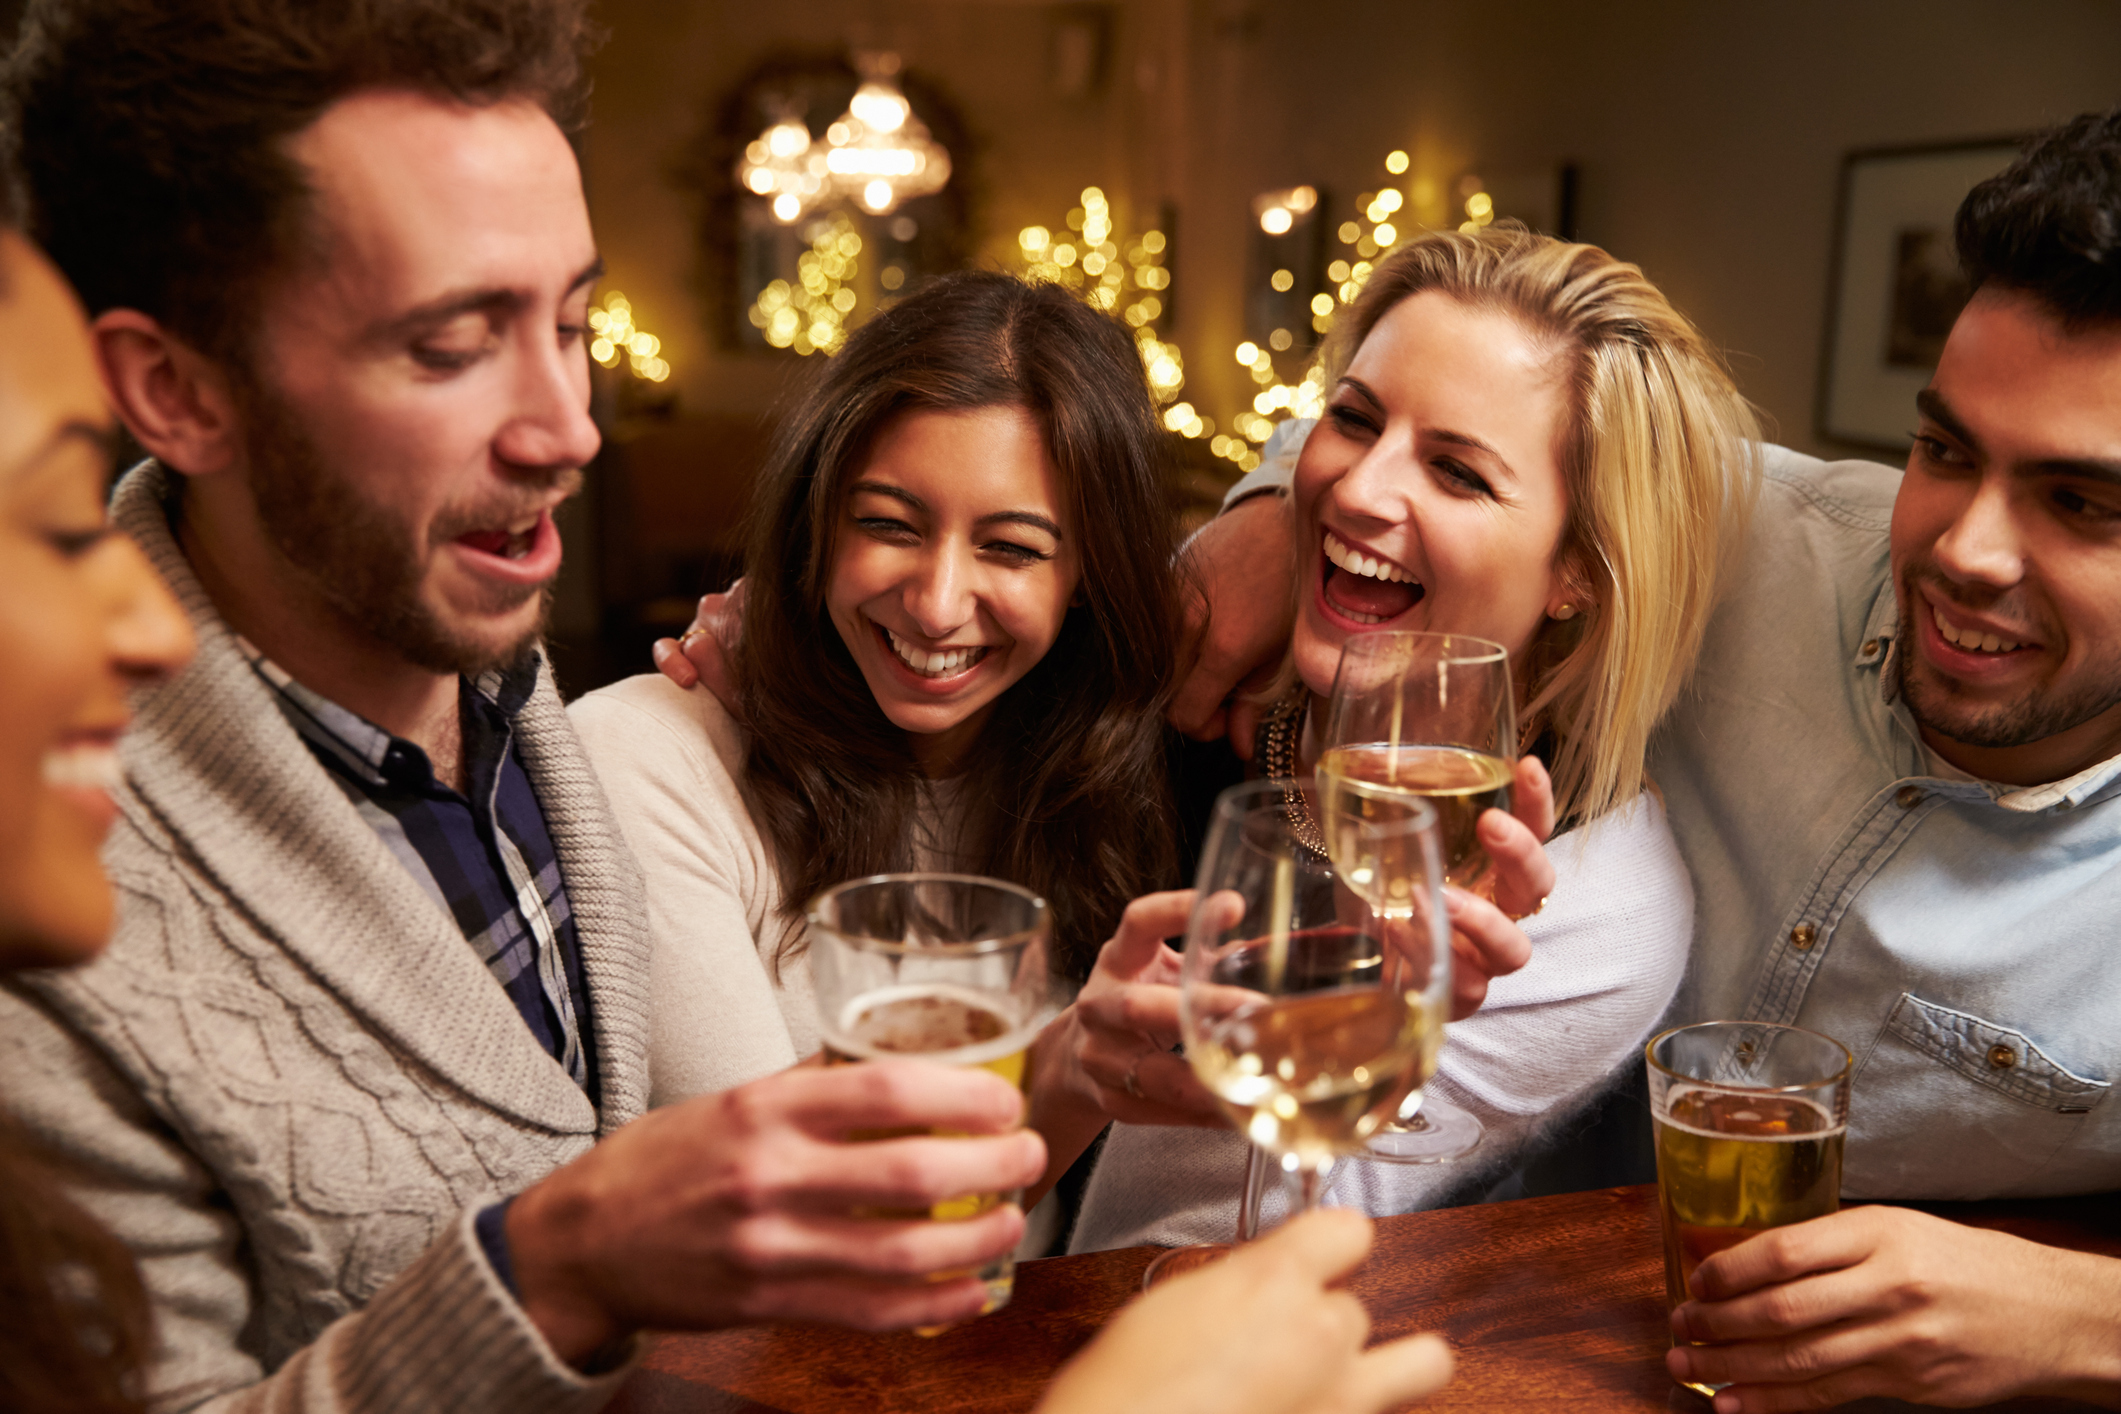 The best pub conversations take place at 7.52pm on Friday nights, according to research. Photo: Getty/monkeybusinessimages